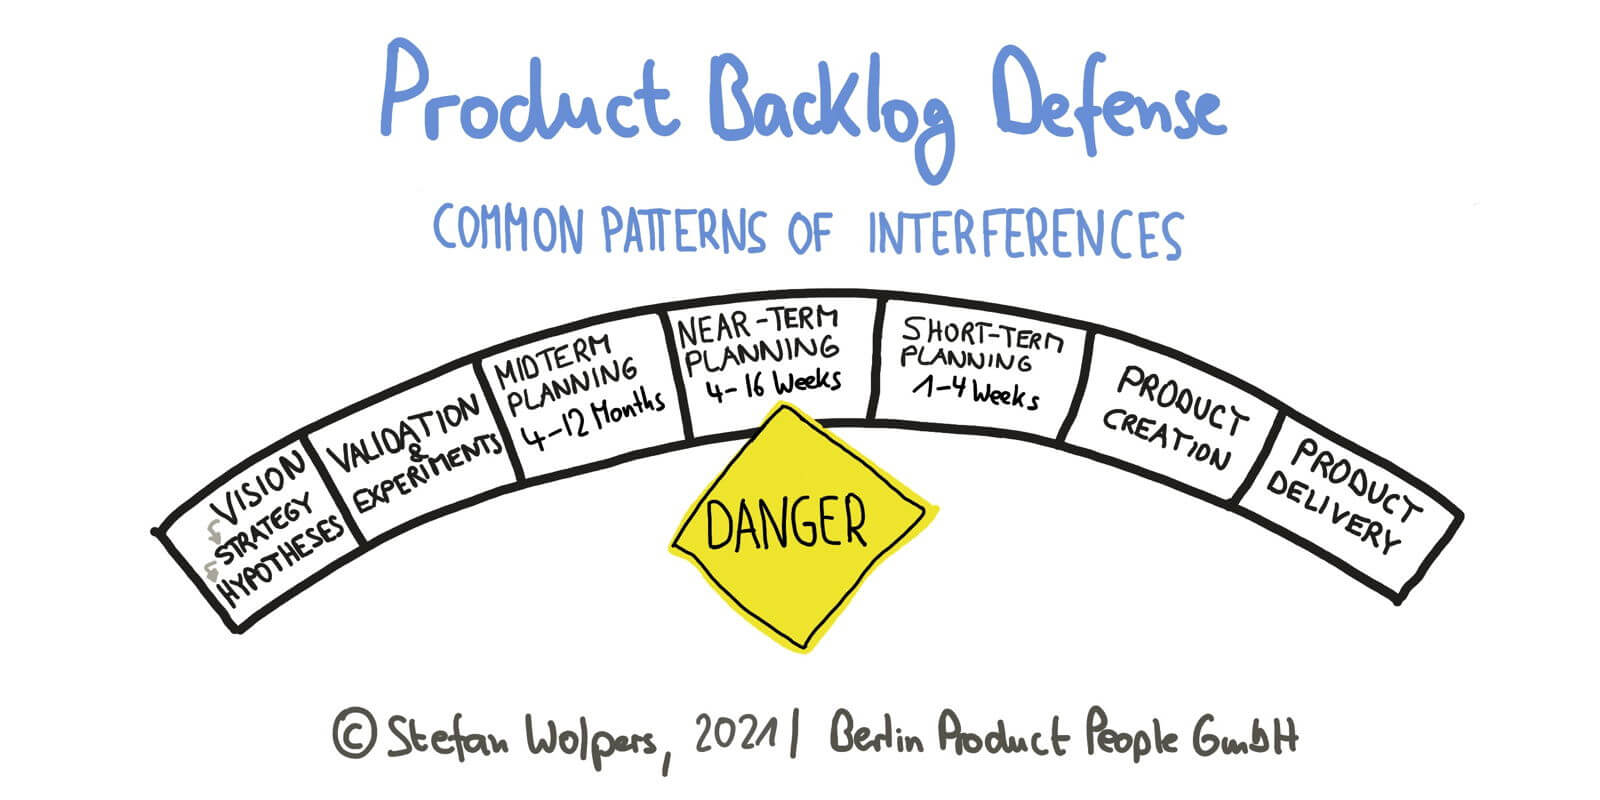 Product Backlog Defense – Common Patterns of Stakeholder Interference